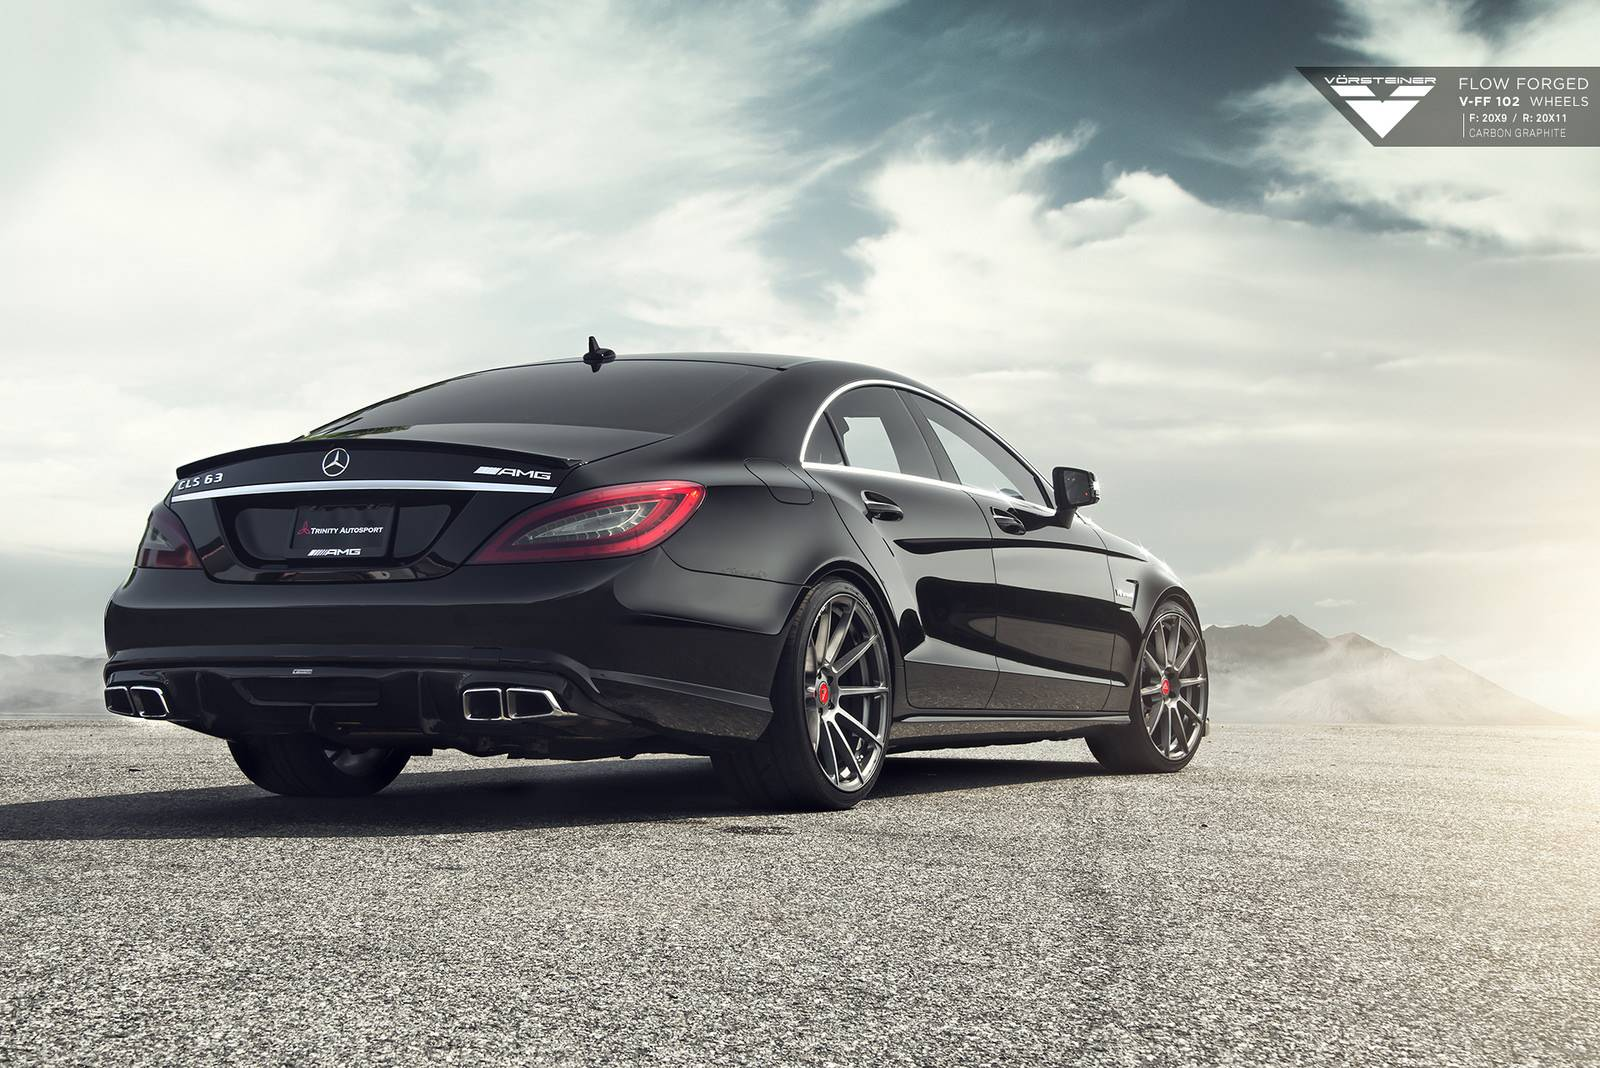 Mercedes benz cls63 amg stuns on vorsteiner wheels gtspirit for Mercedes benz amg cls